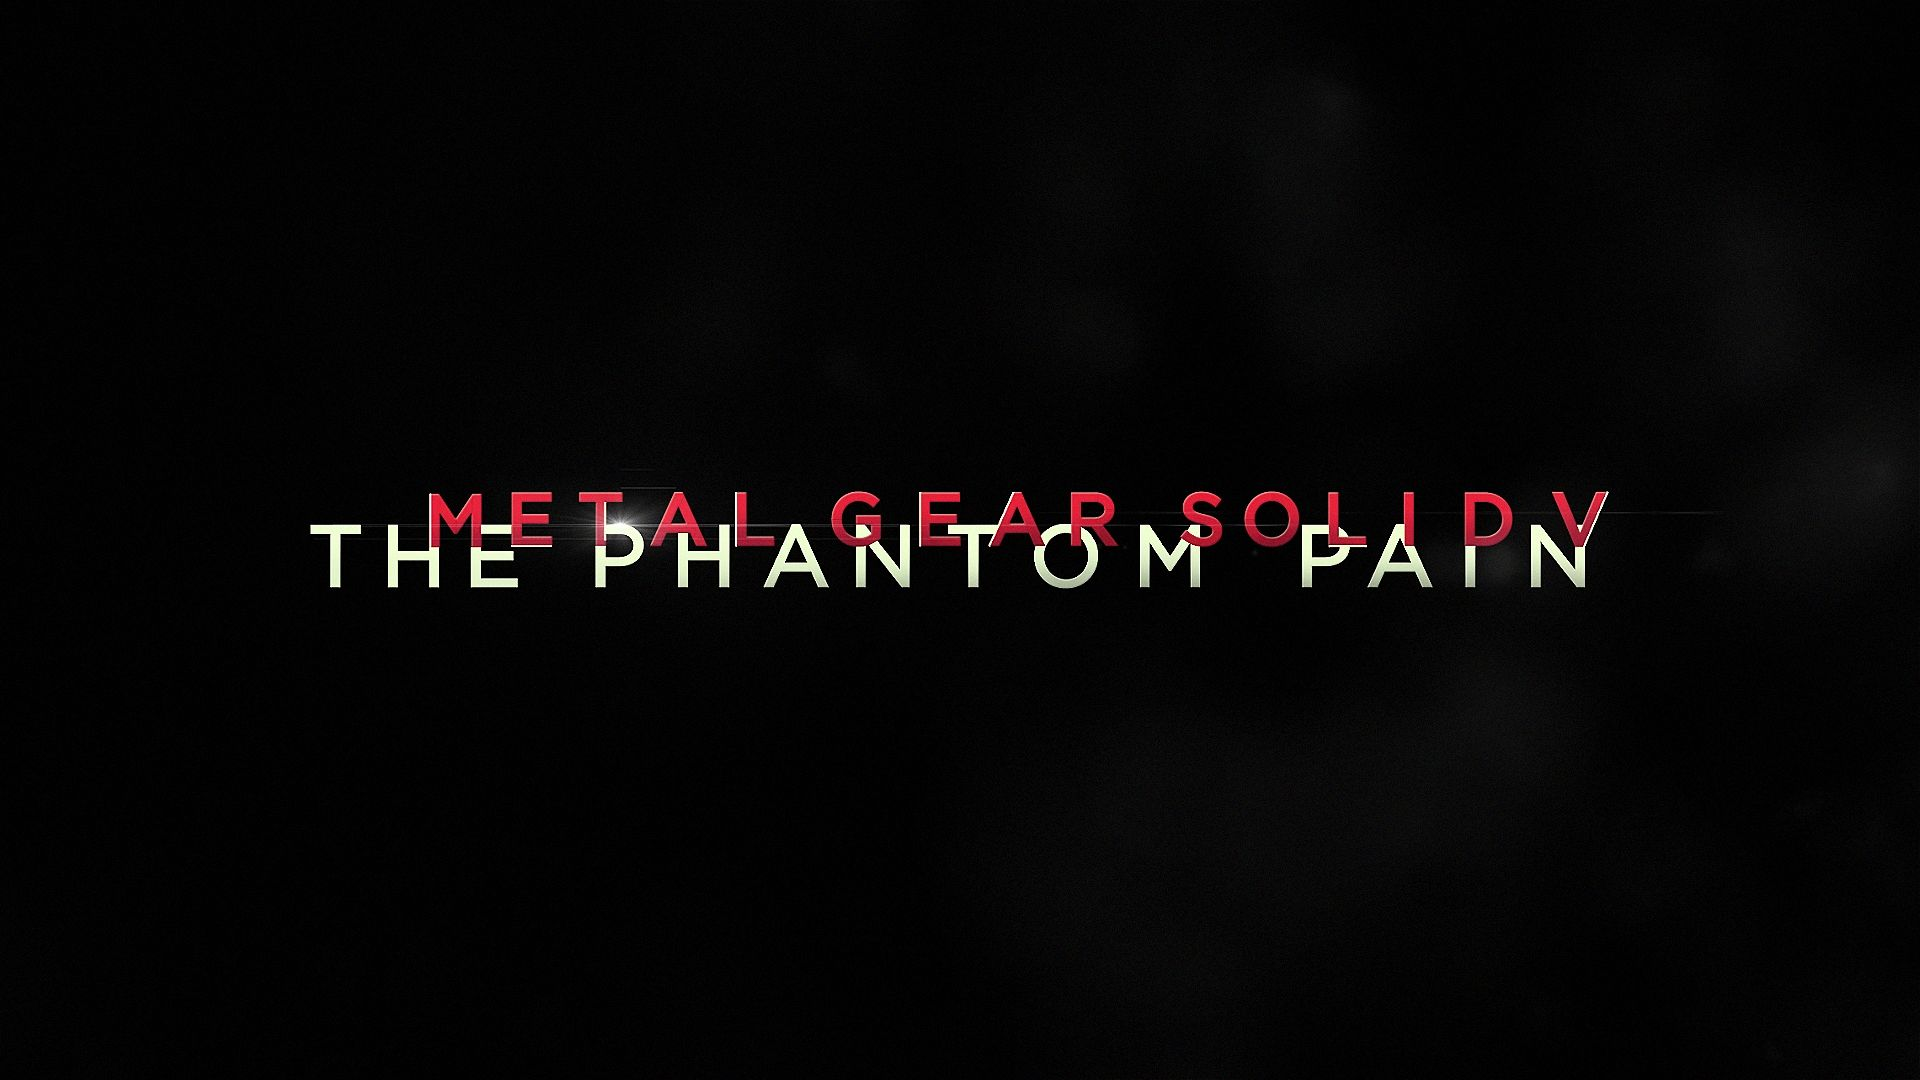 Metal gear solid 5 phantom pain logo